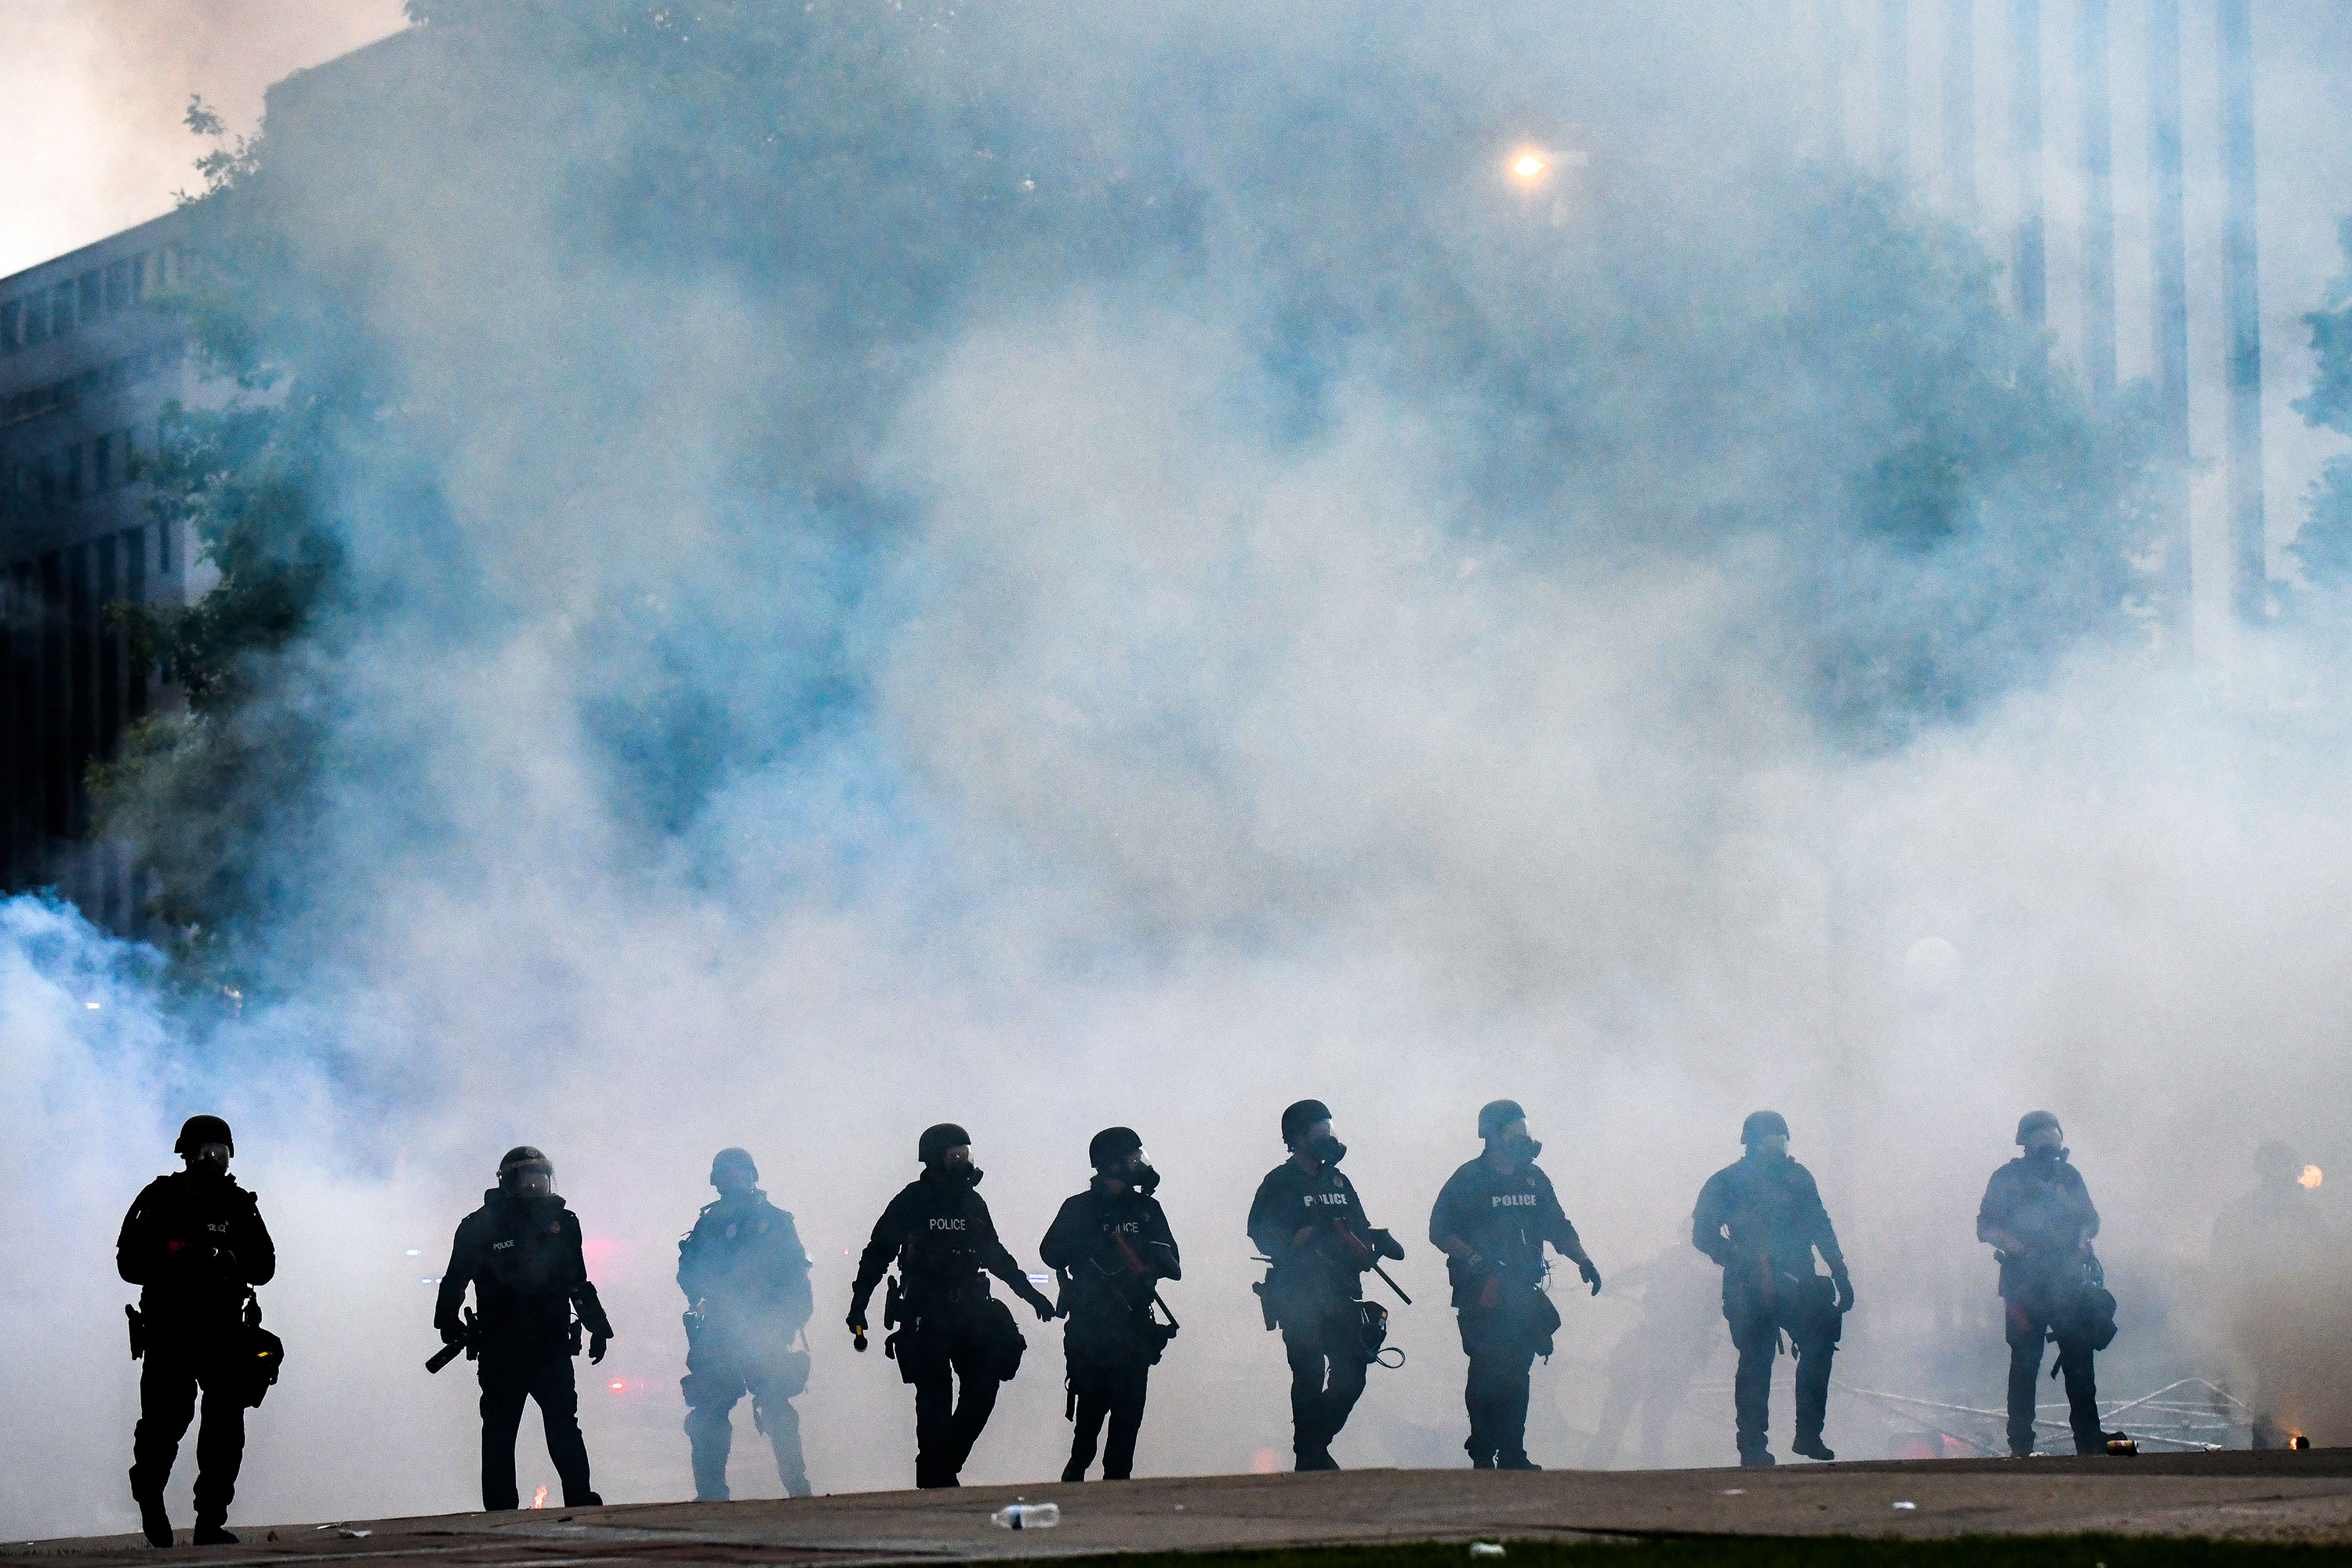 Police officers walk through a cloud of tear gas as they try to disperse protesters on May 30 in Denver, Colorado.